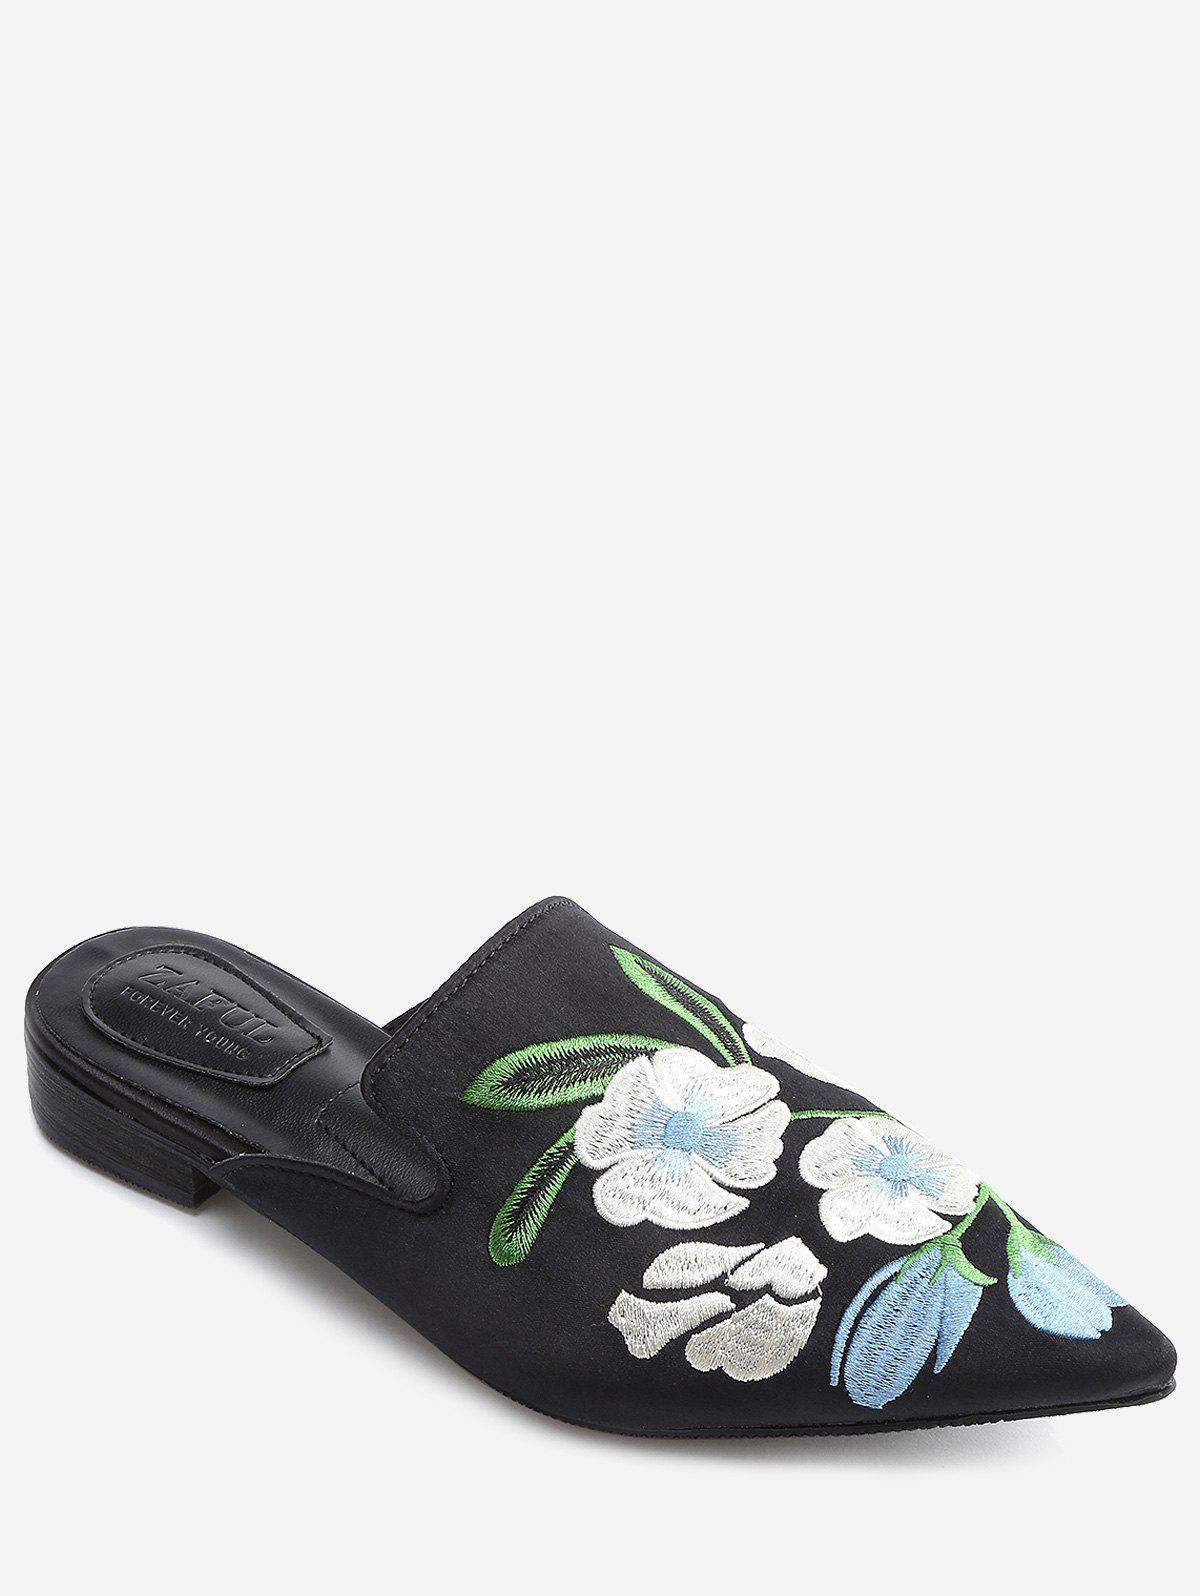 Latest Pointed Toe Flower Embroidery Mules Shoes